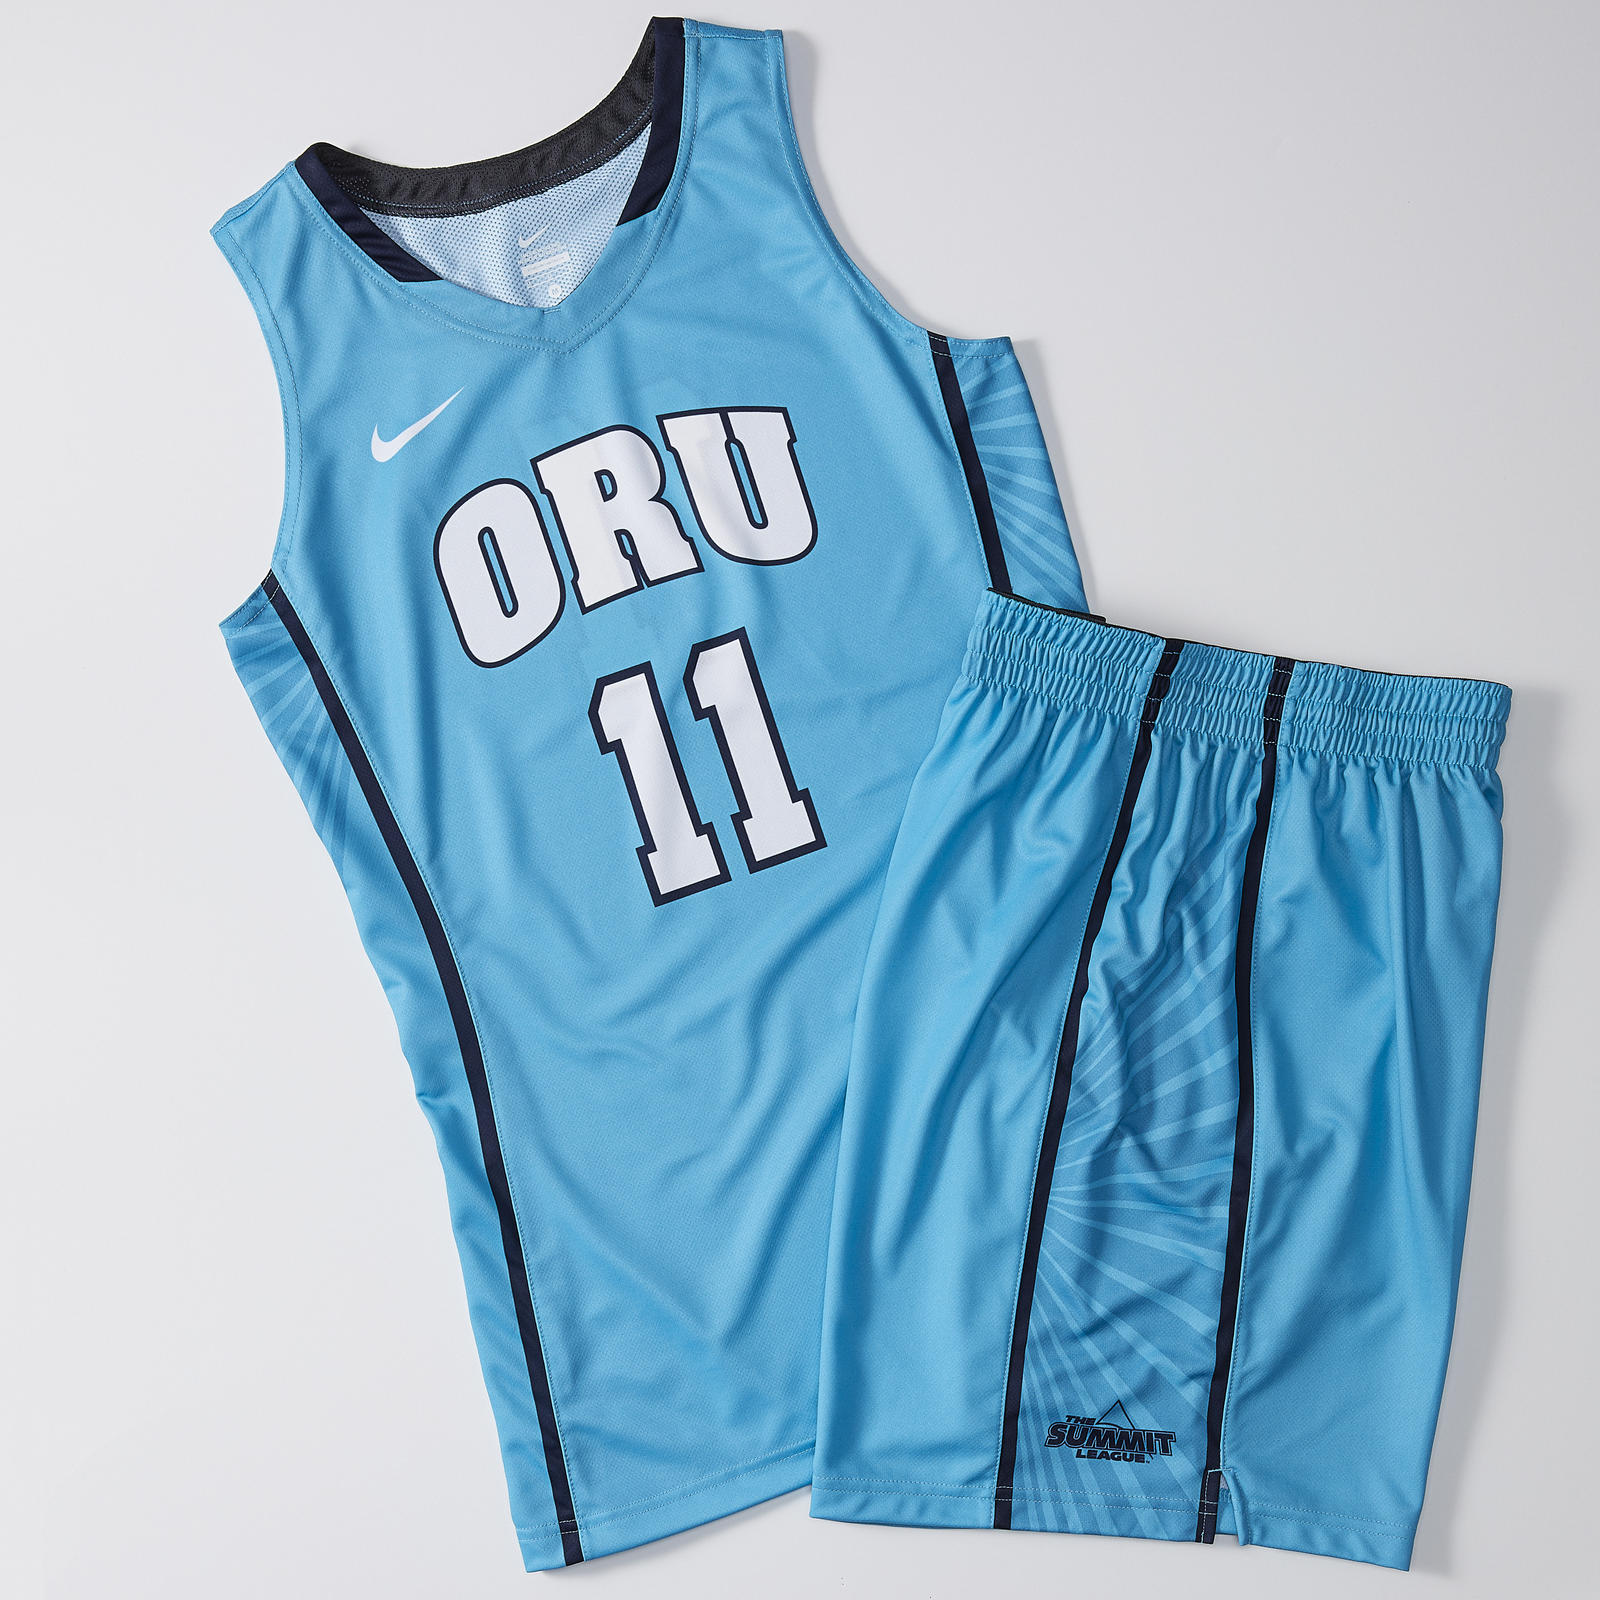 The Nike N7 College Basketball Uniform: More Than a Turquoise Jersey 3